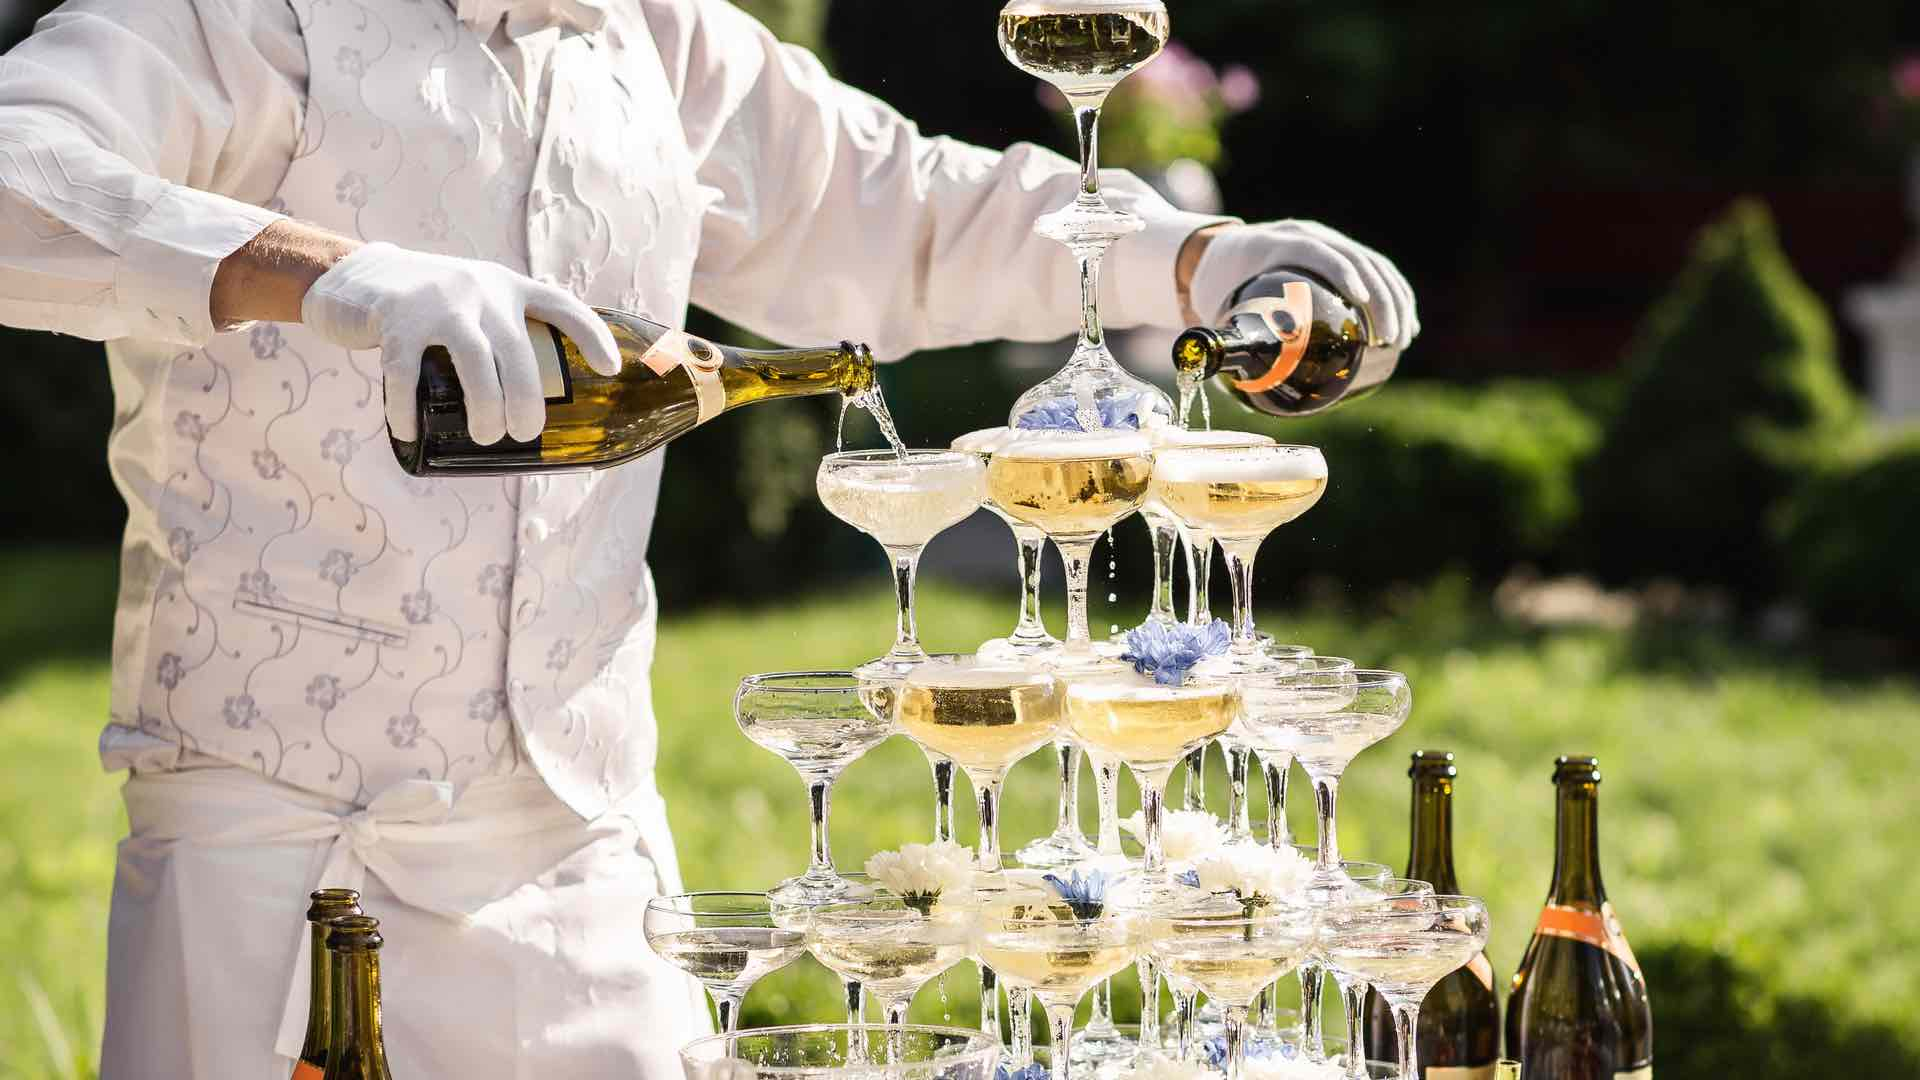 Mann schenkt Sekt in Glas + Cocktail Catering